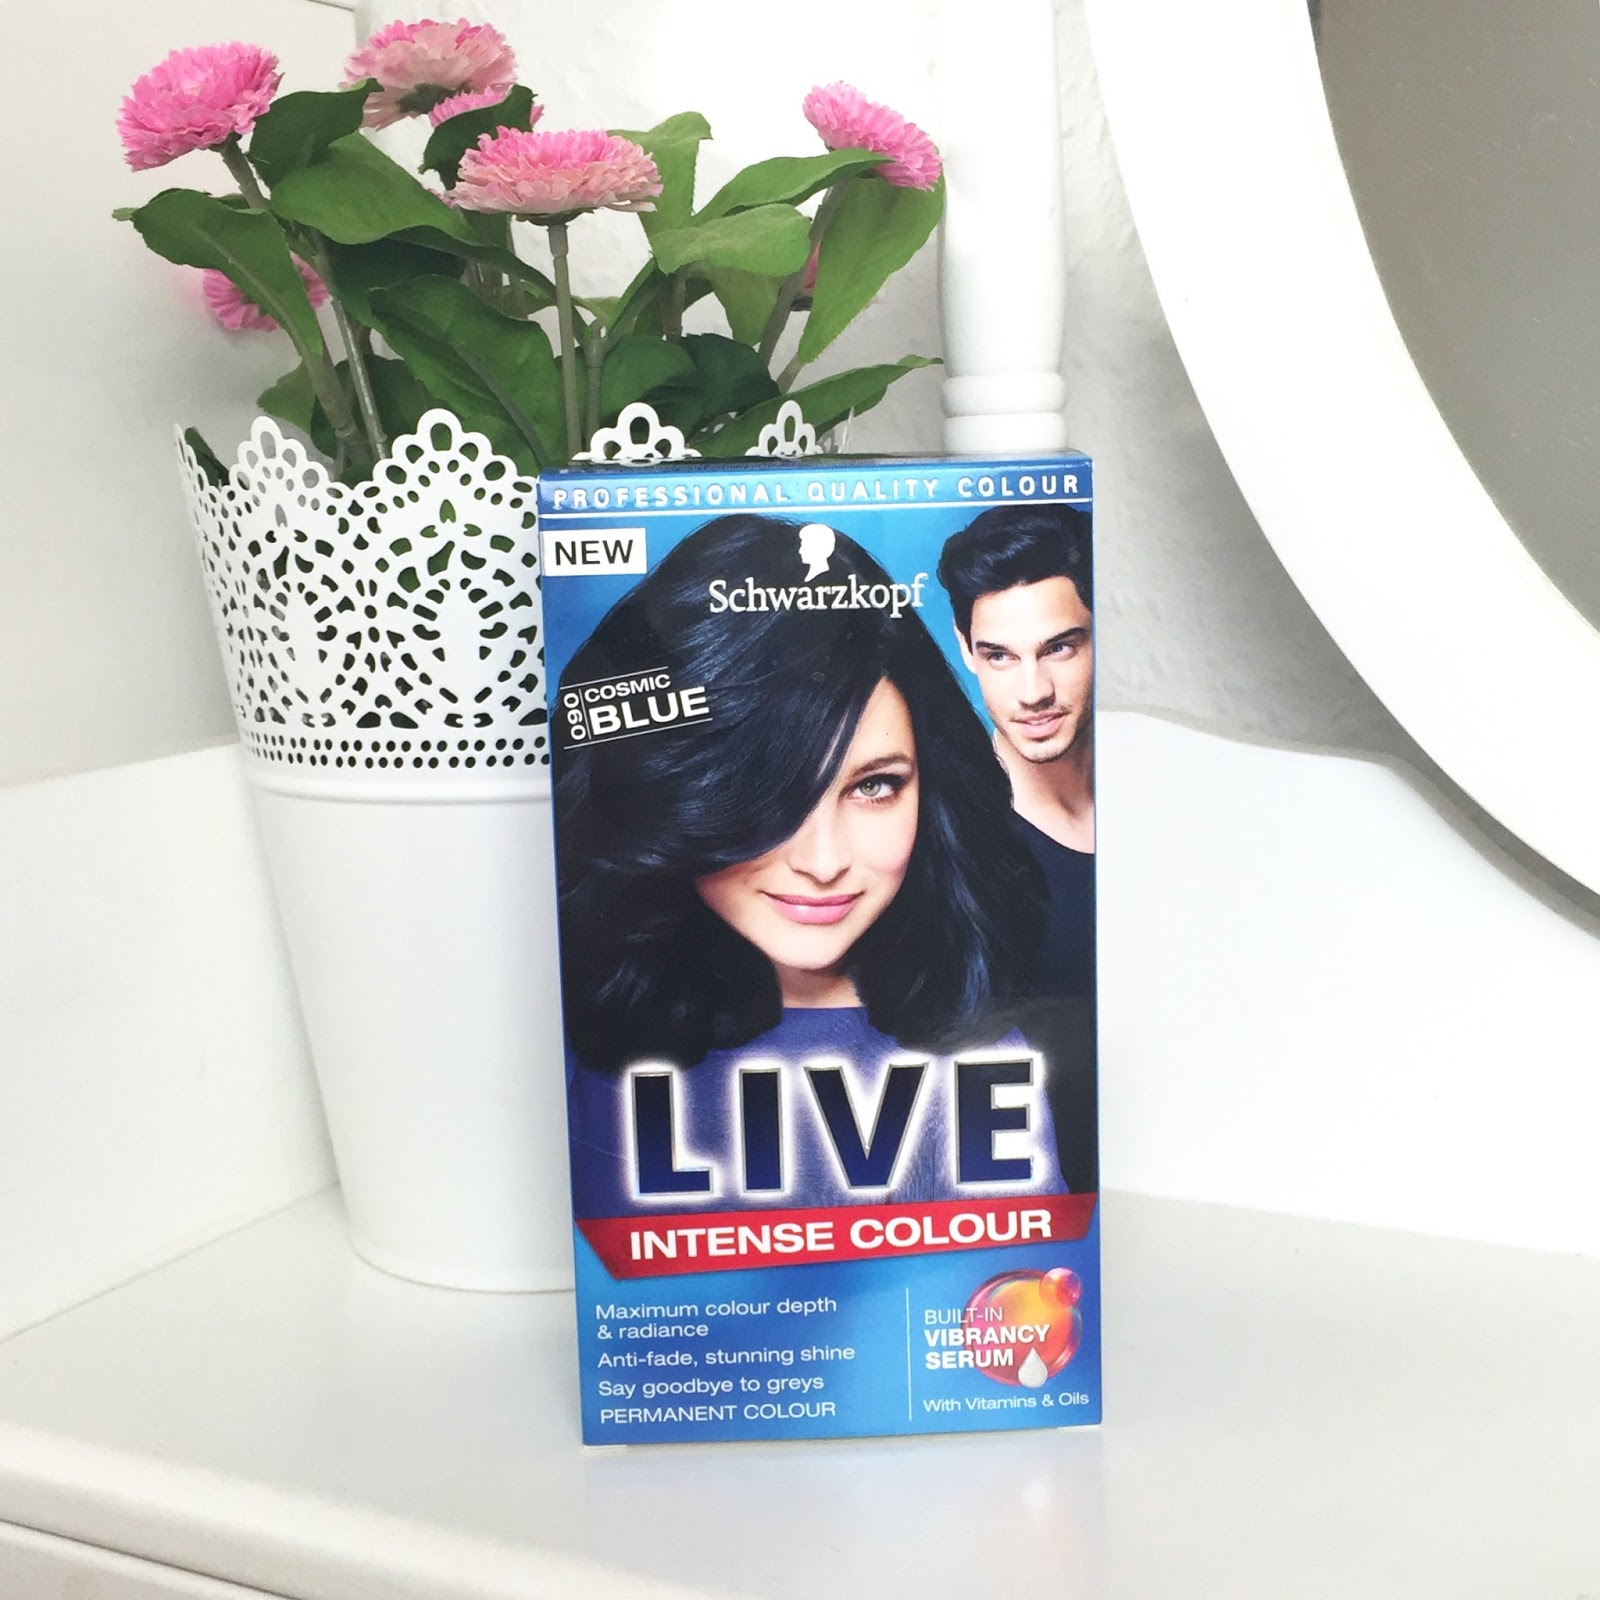 Dying My Hair Cosmic Blue With Schwarzkopf Live Only In